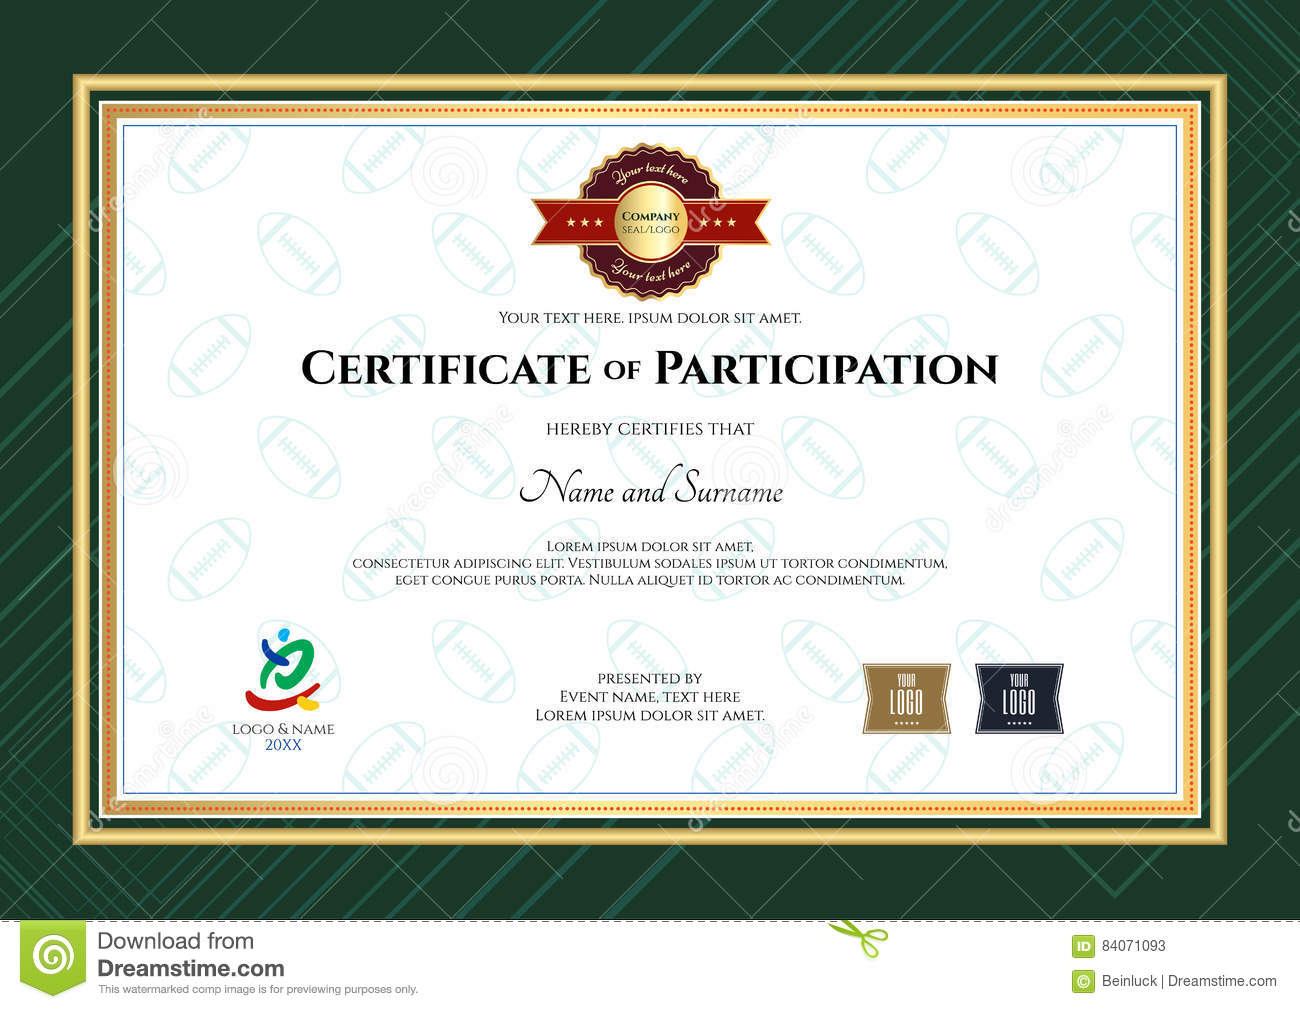 Doc600462 Certificate of Participation Template Certificate – Certificate of Participation Template